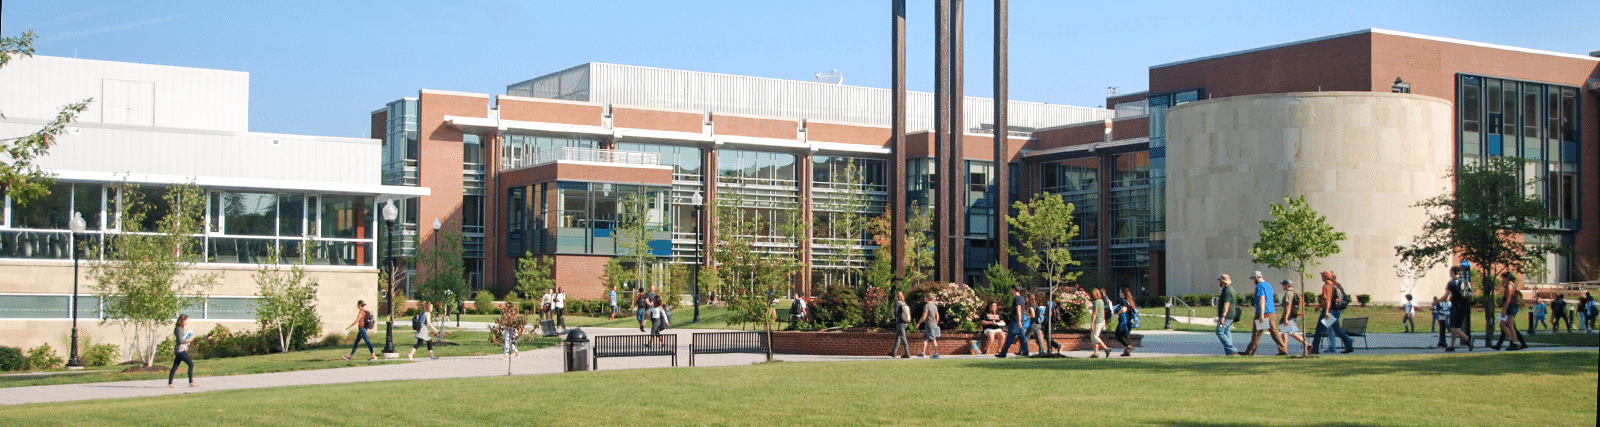 Beautiful Image of the Campus